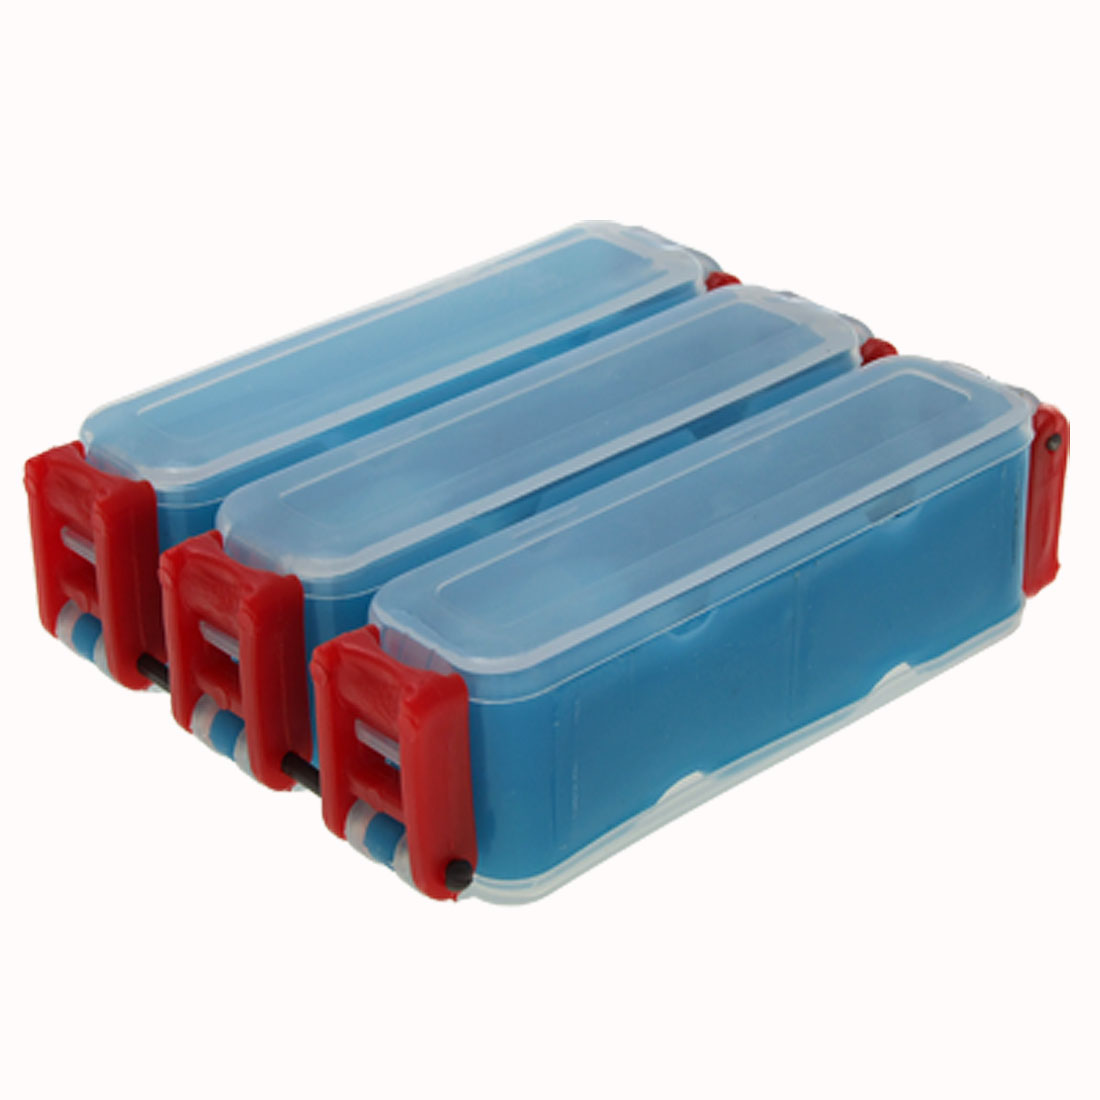 Two Side 6 Compartments Fishing Lure Bait Tackle Box